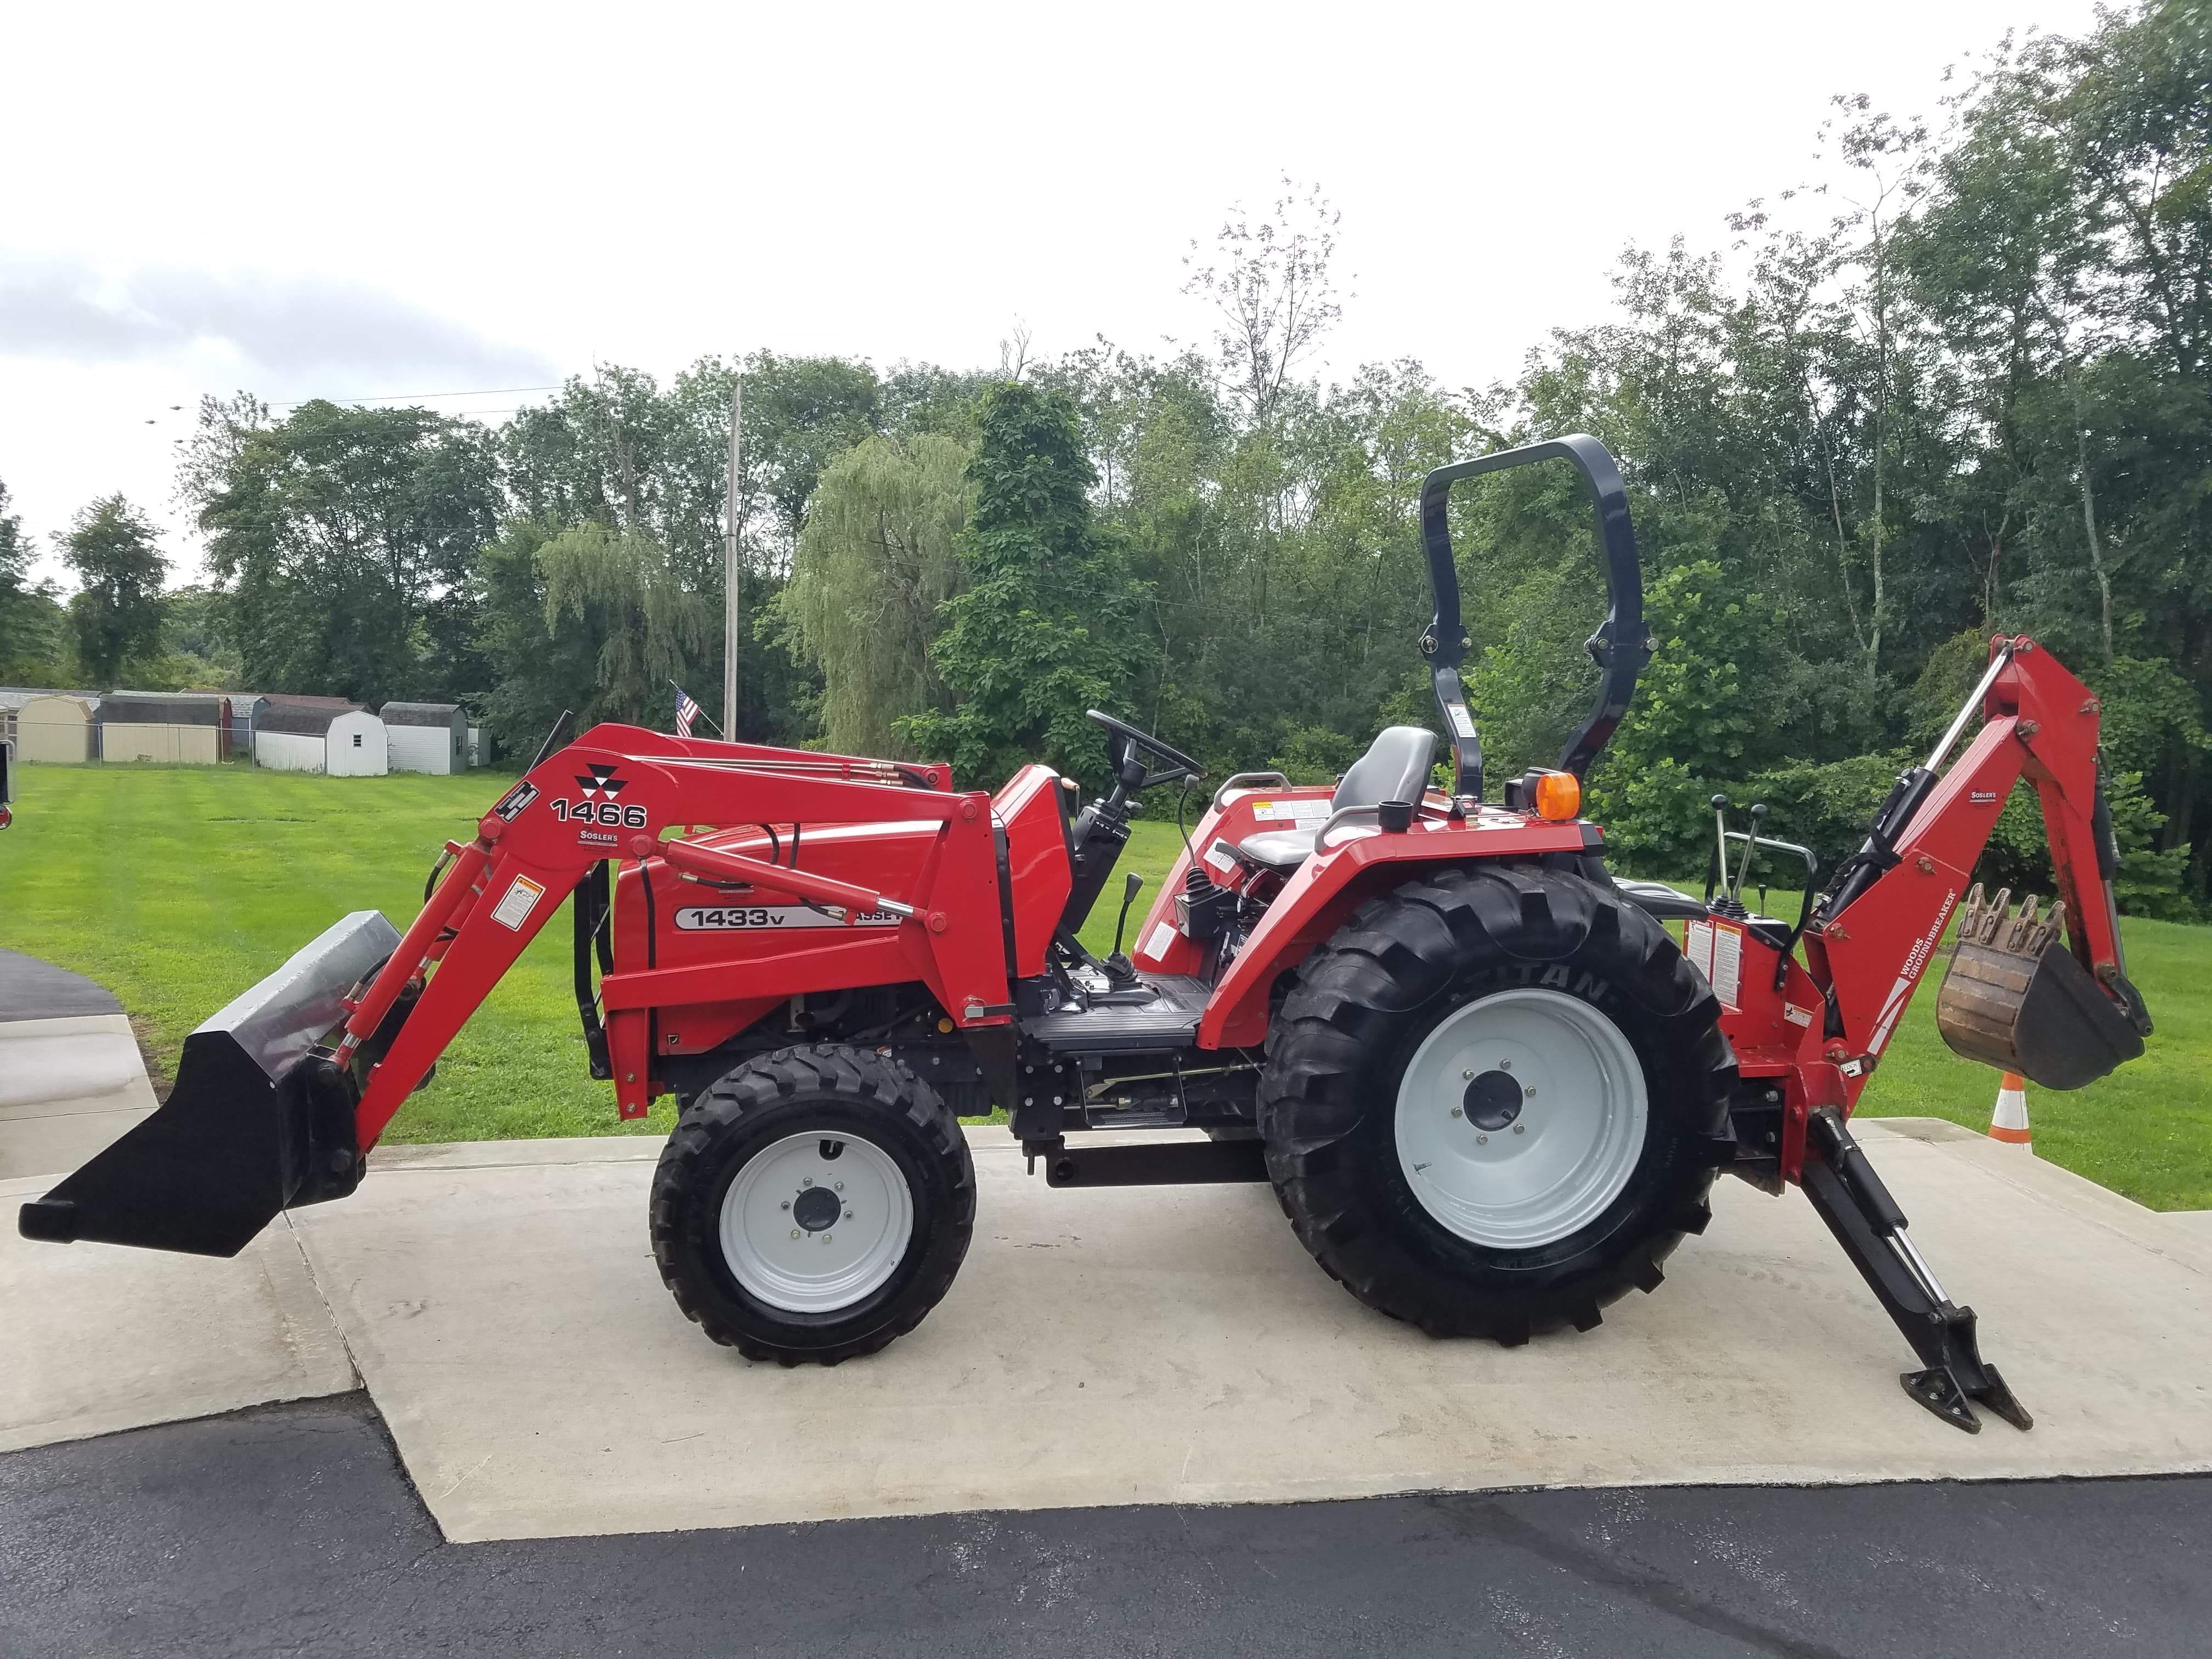 2009 Massey Ferguson 1528 Tractor Loader Backhoe for sale in